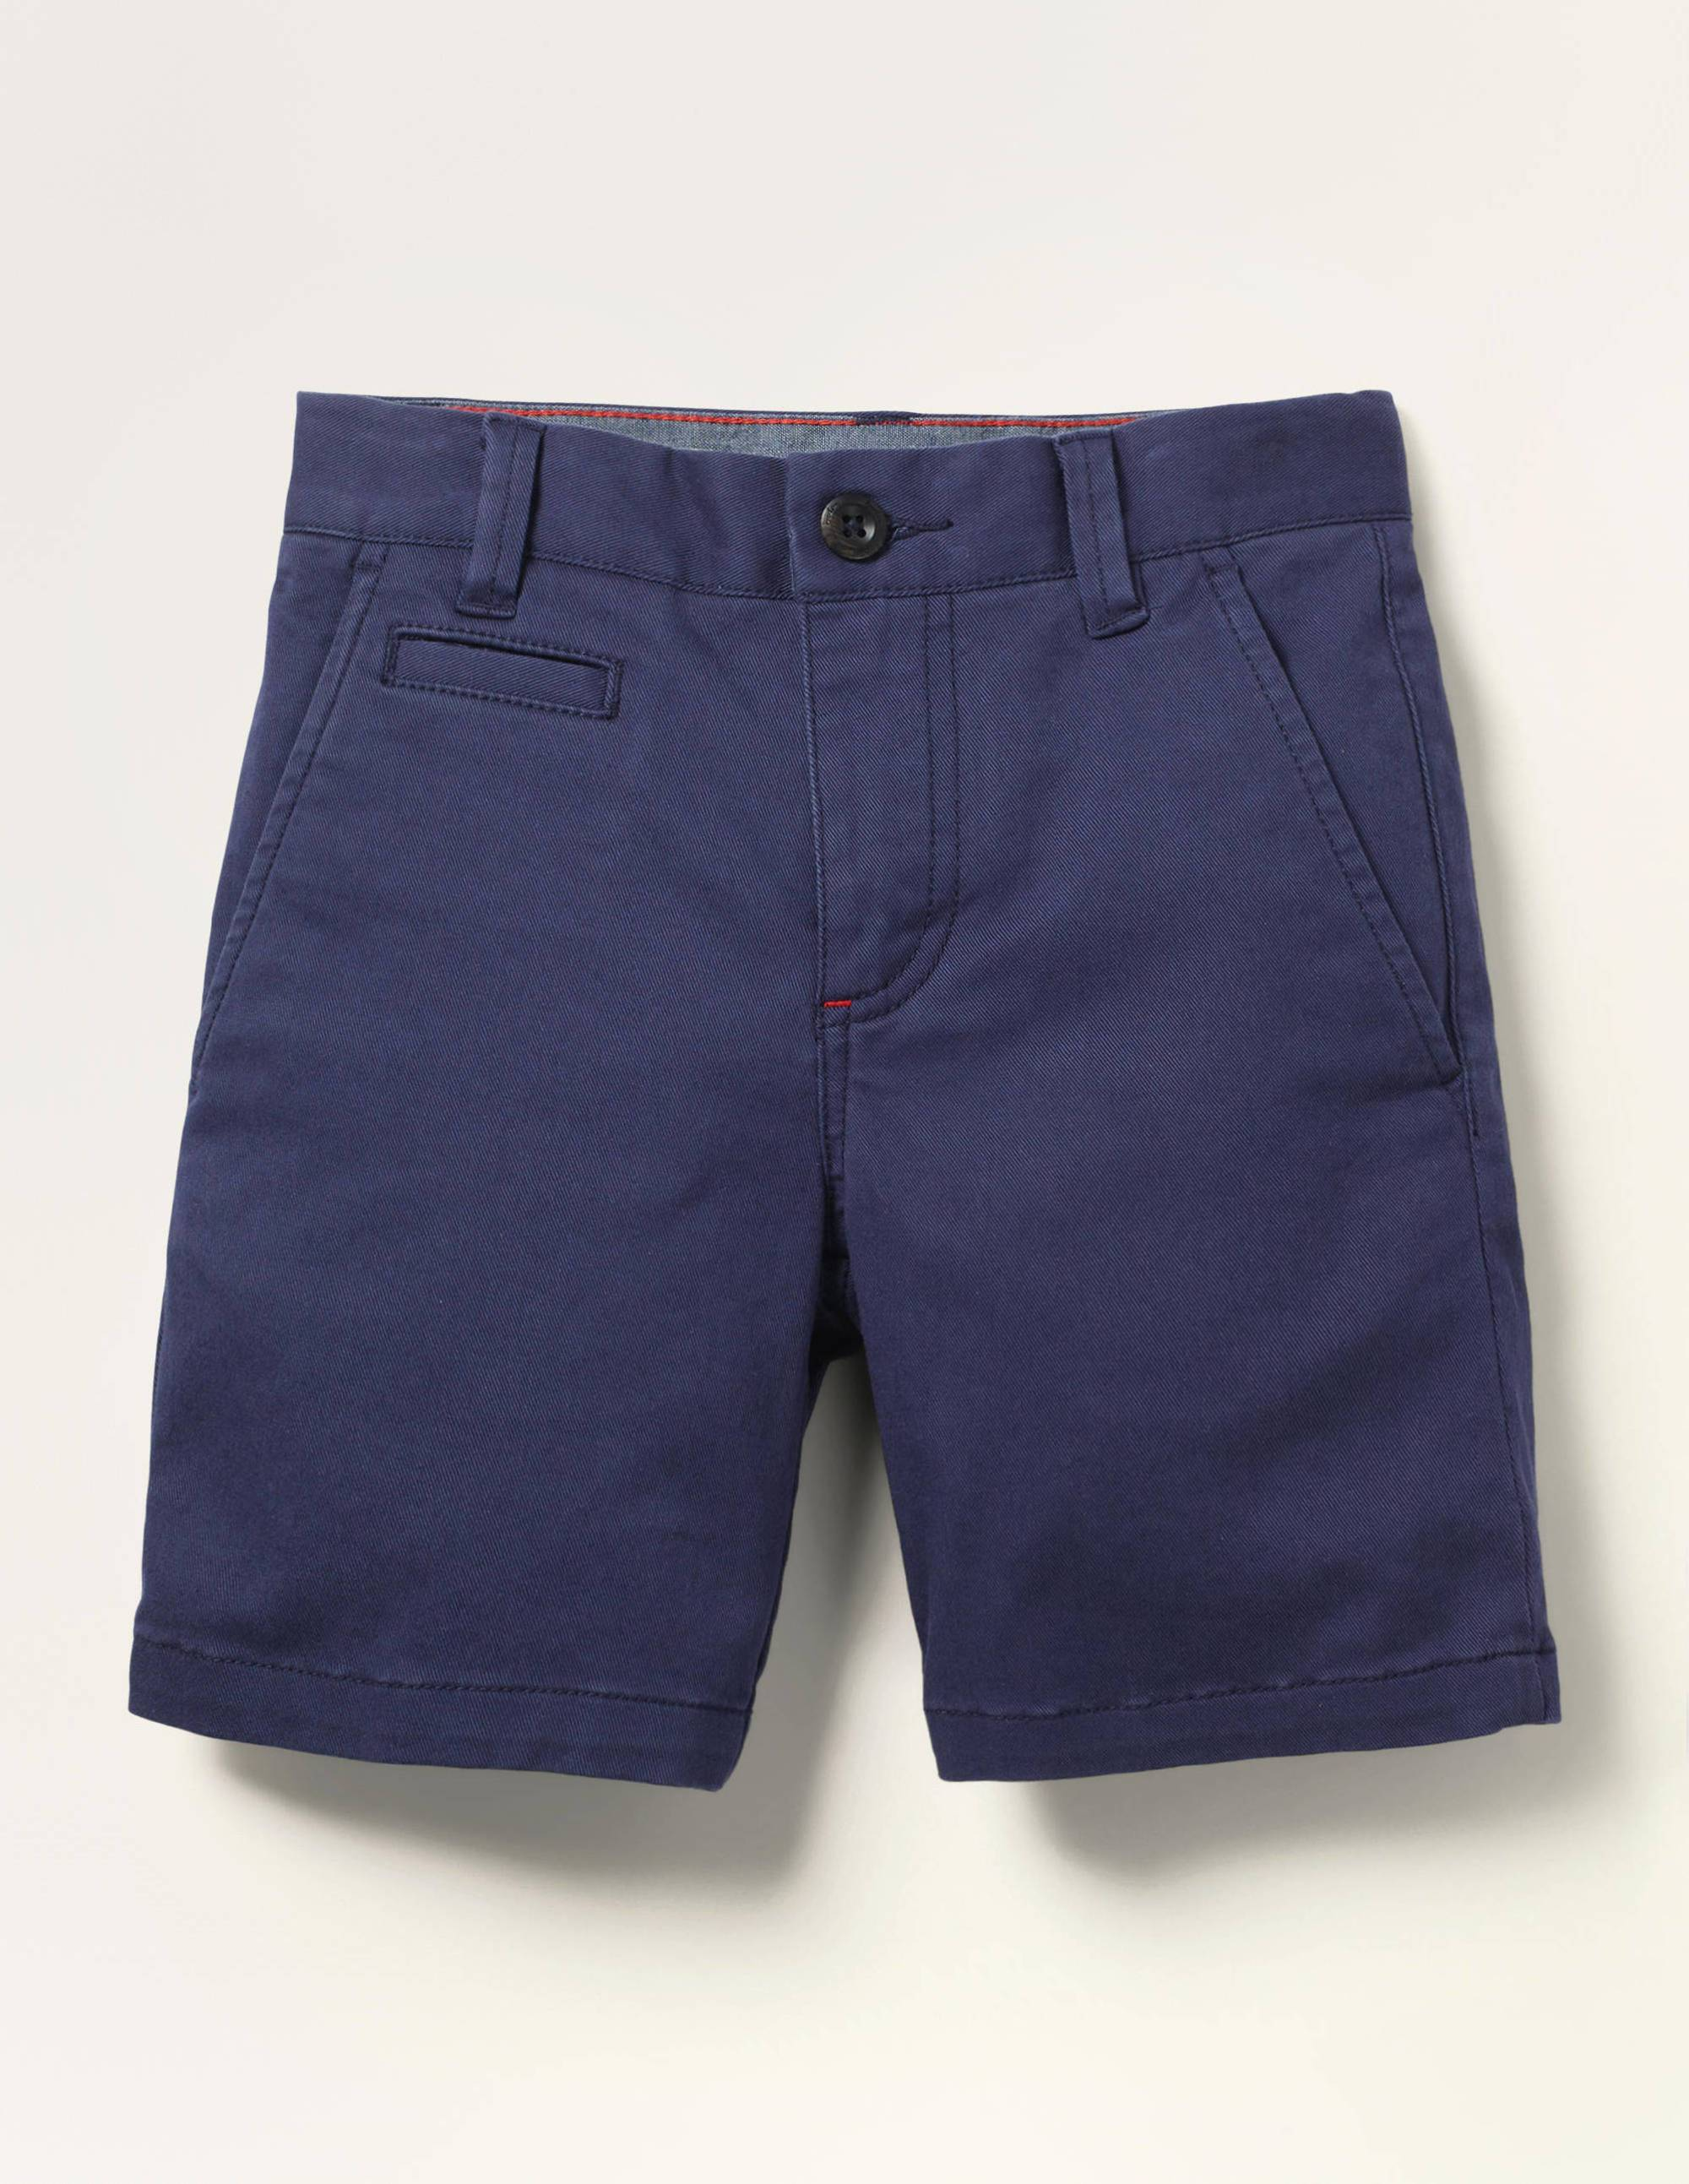 Mini Short chino NAV Femme Boden, Blue - 11a